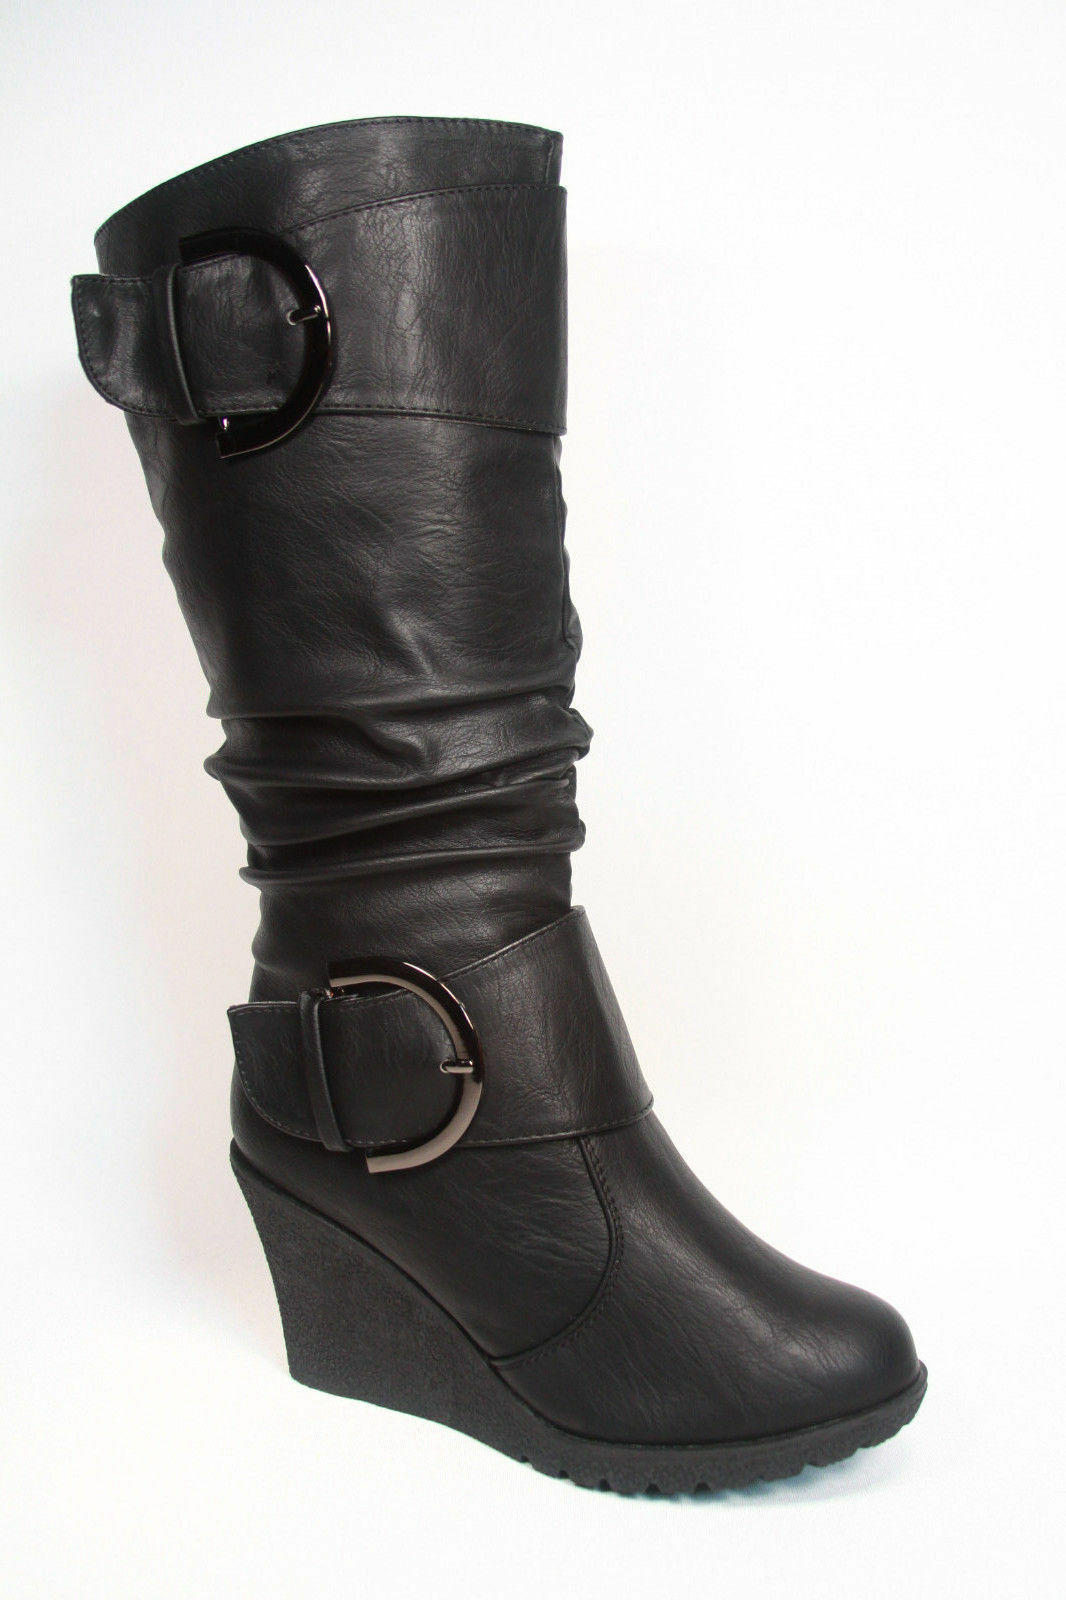 Women's Cute Round Toe Slouch Buckle Wedge Mid Calf  Boot Shoes Size 5 -11 NEW